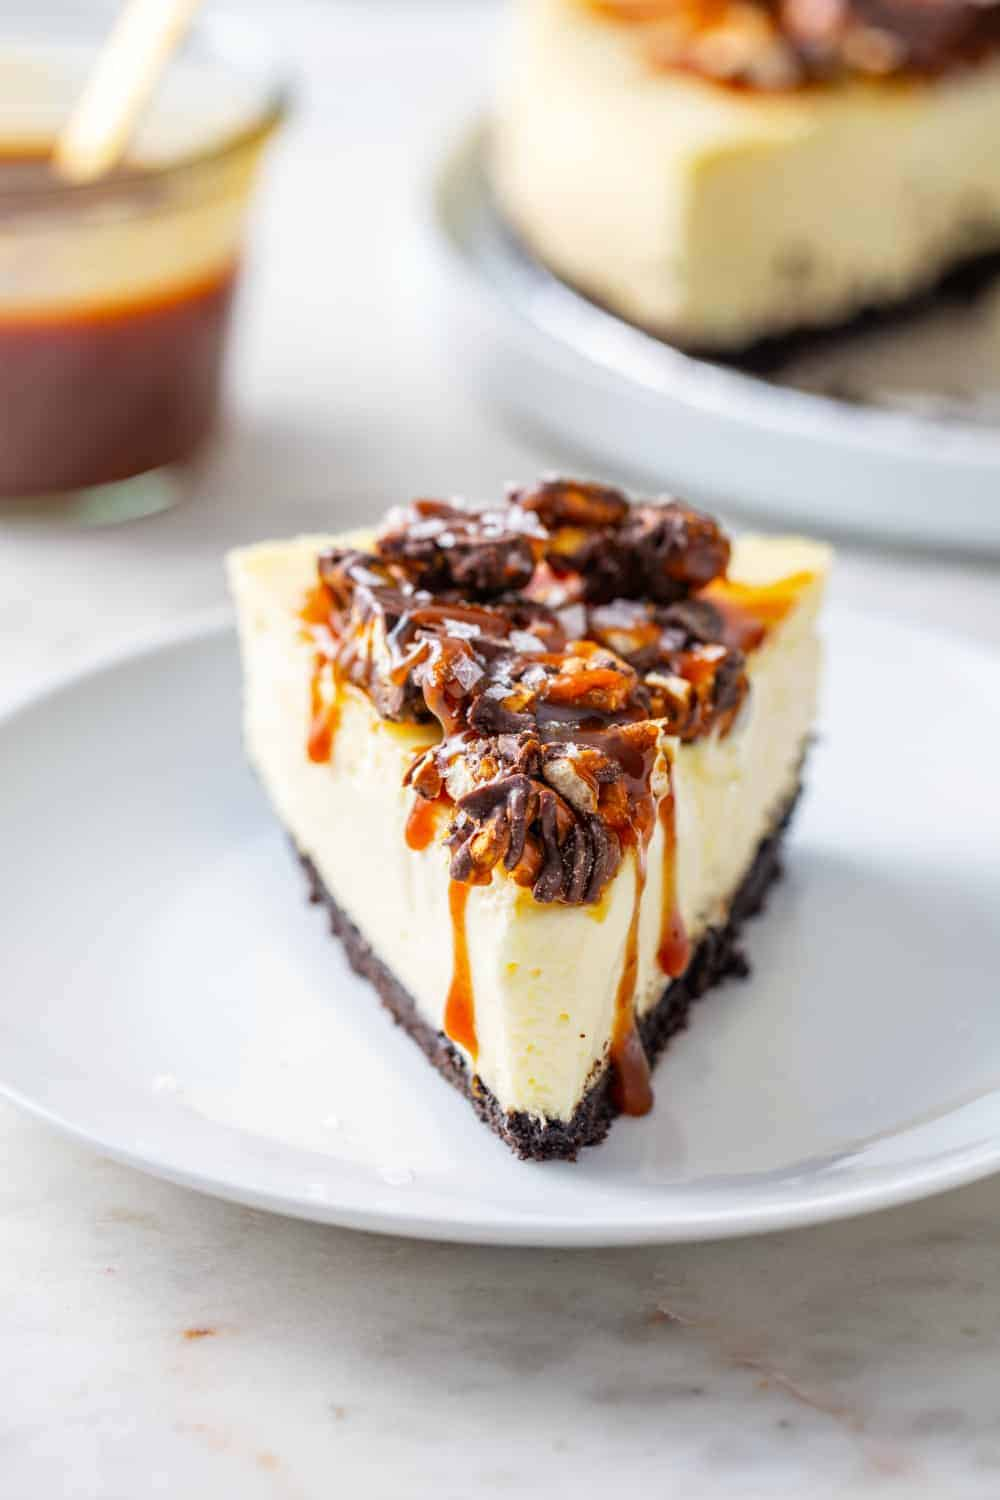 Slice of sweet and salty cheesecake on a white plate with a jar of caramel in the background